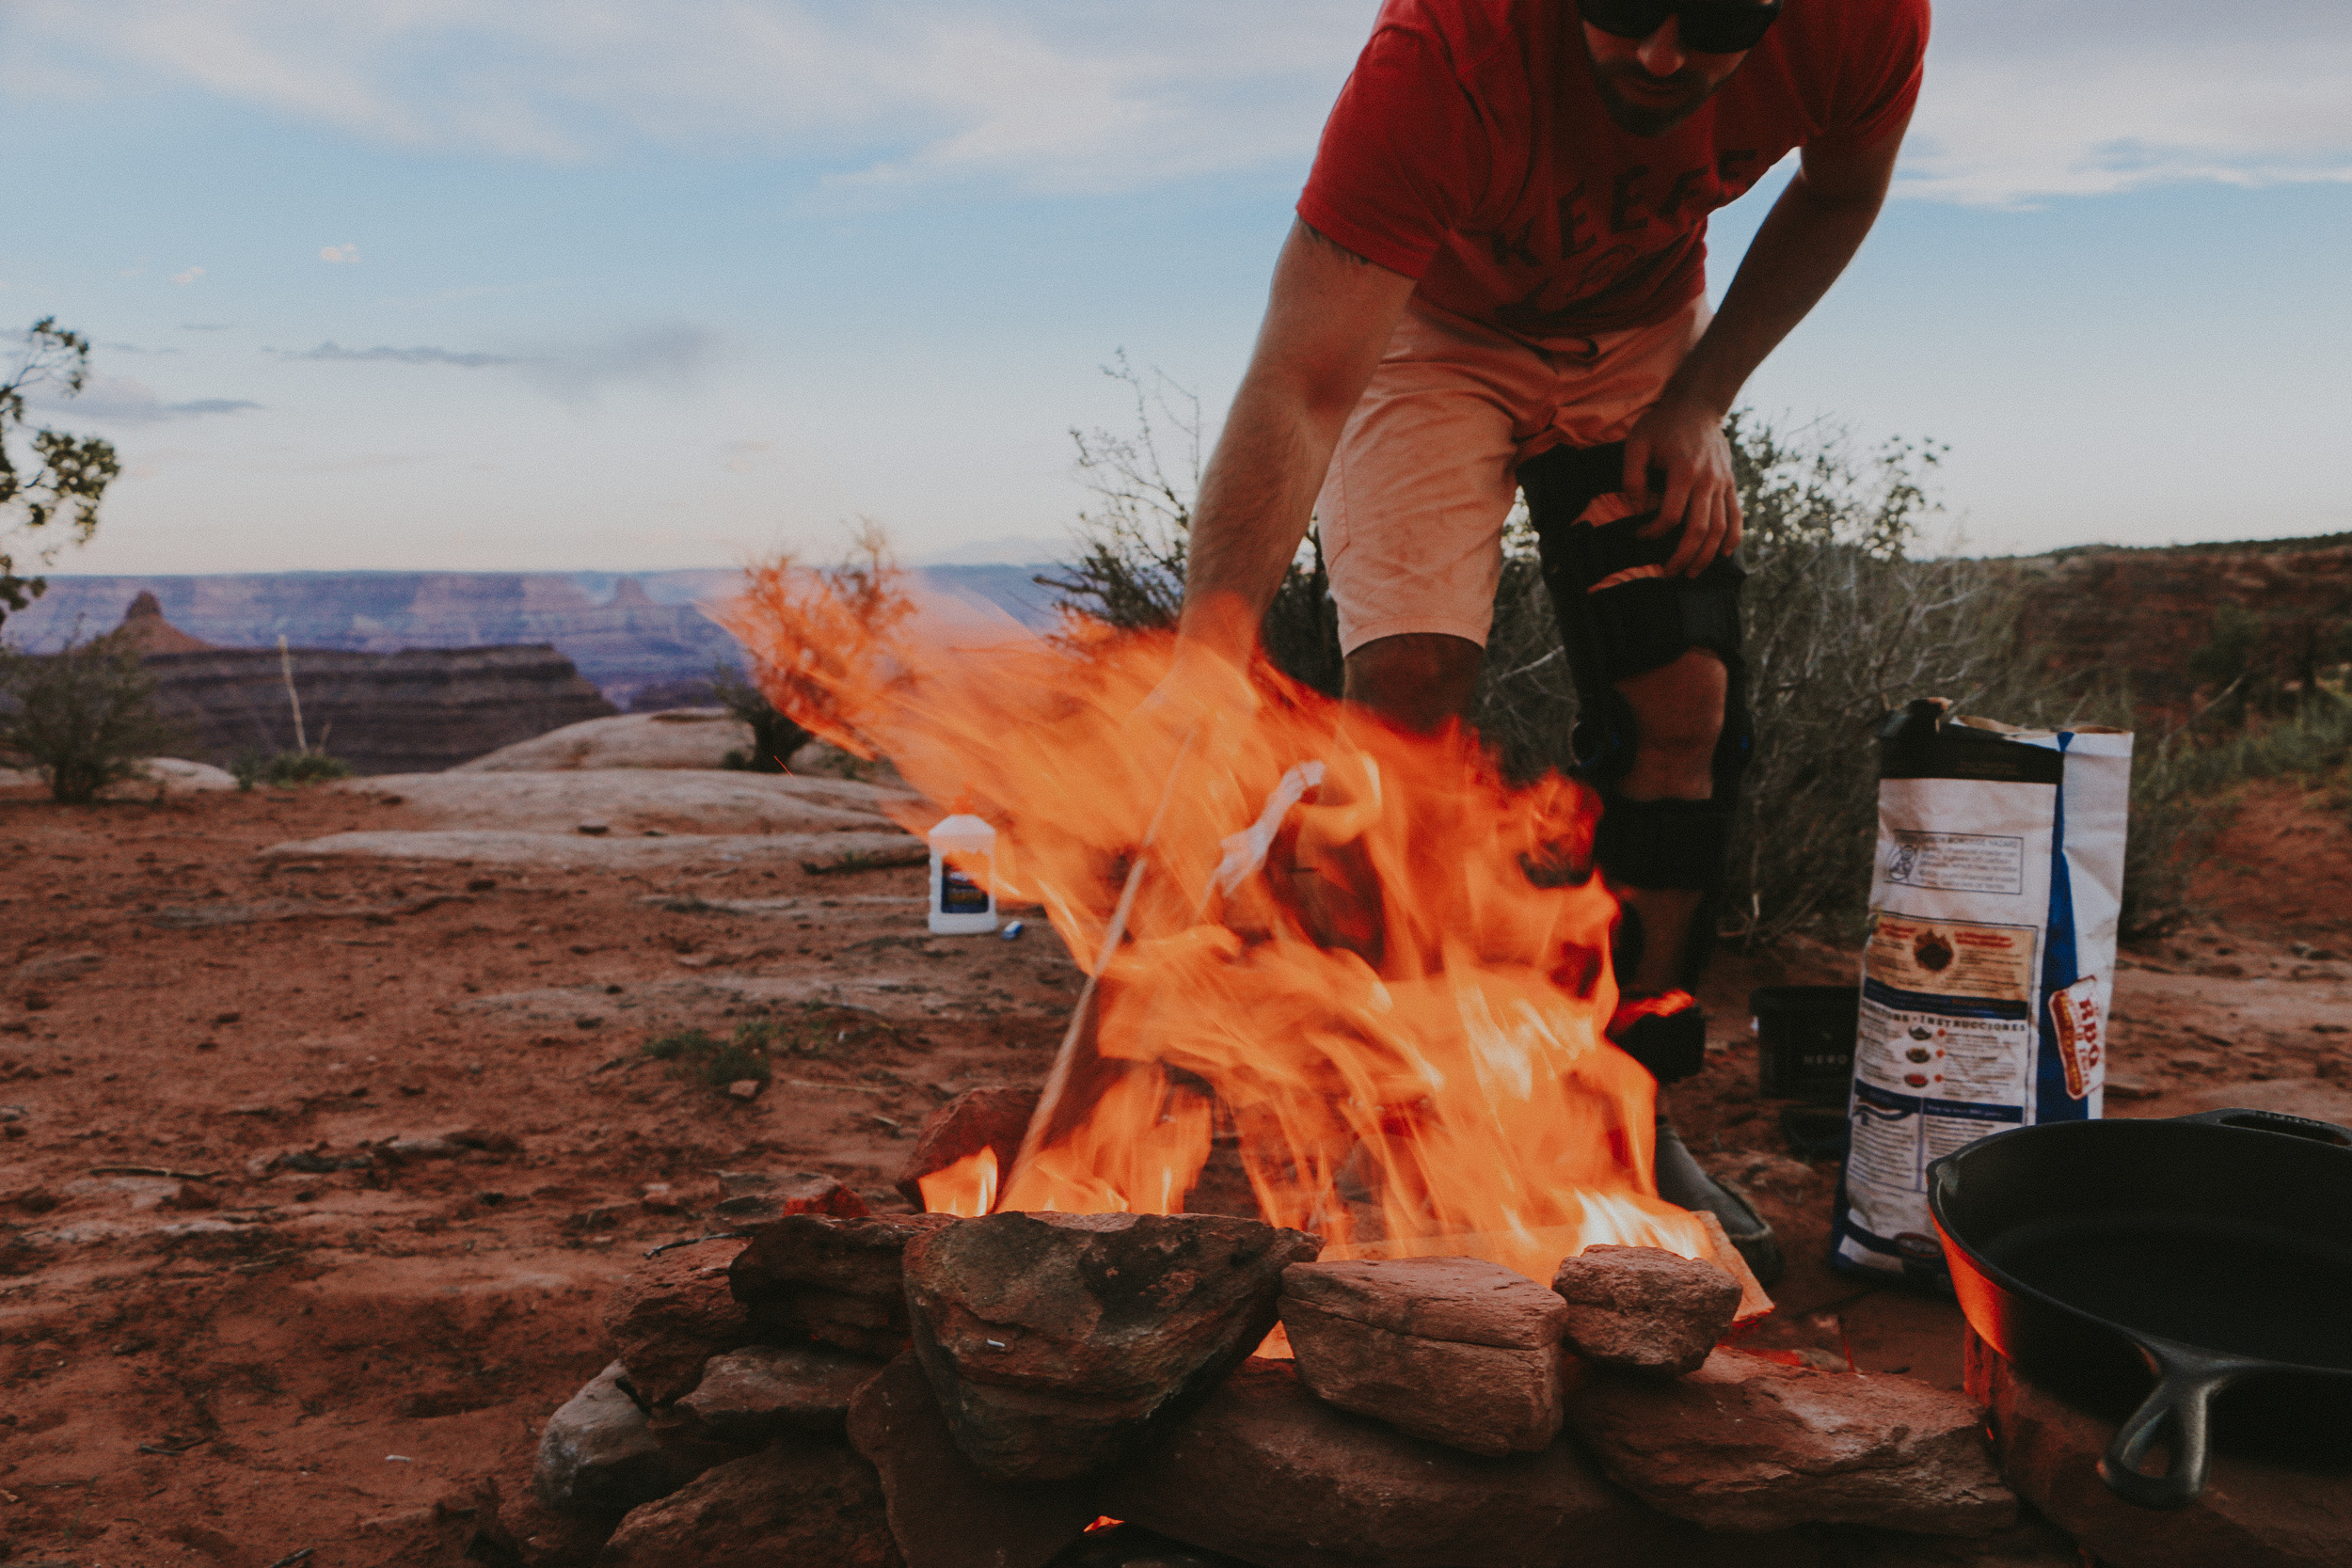 Making a fire at our campsite at Canyonlands National Park